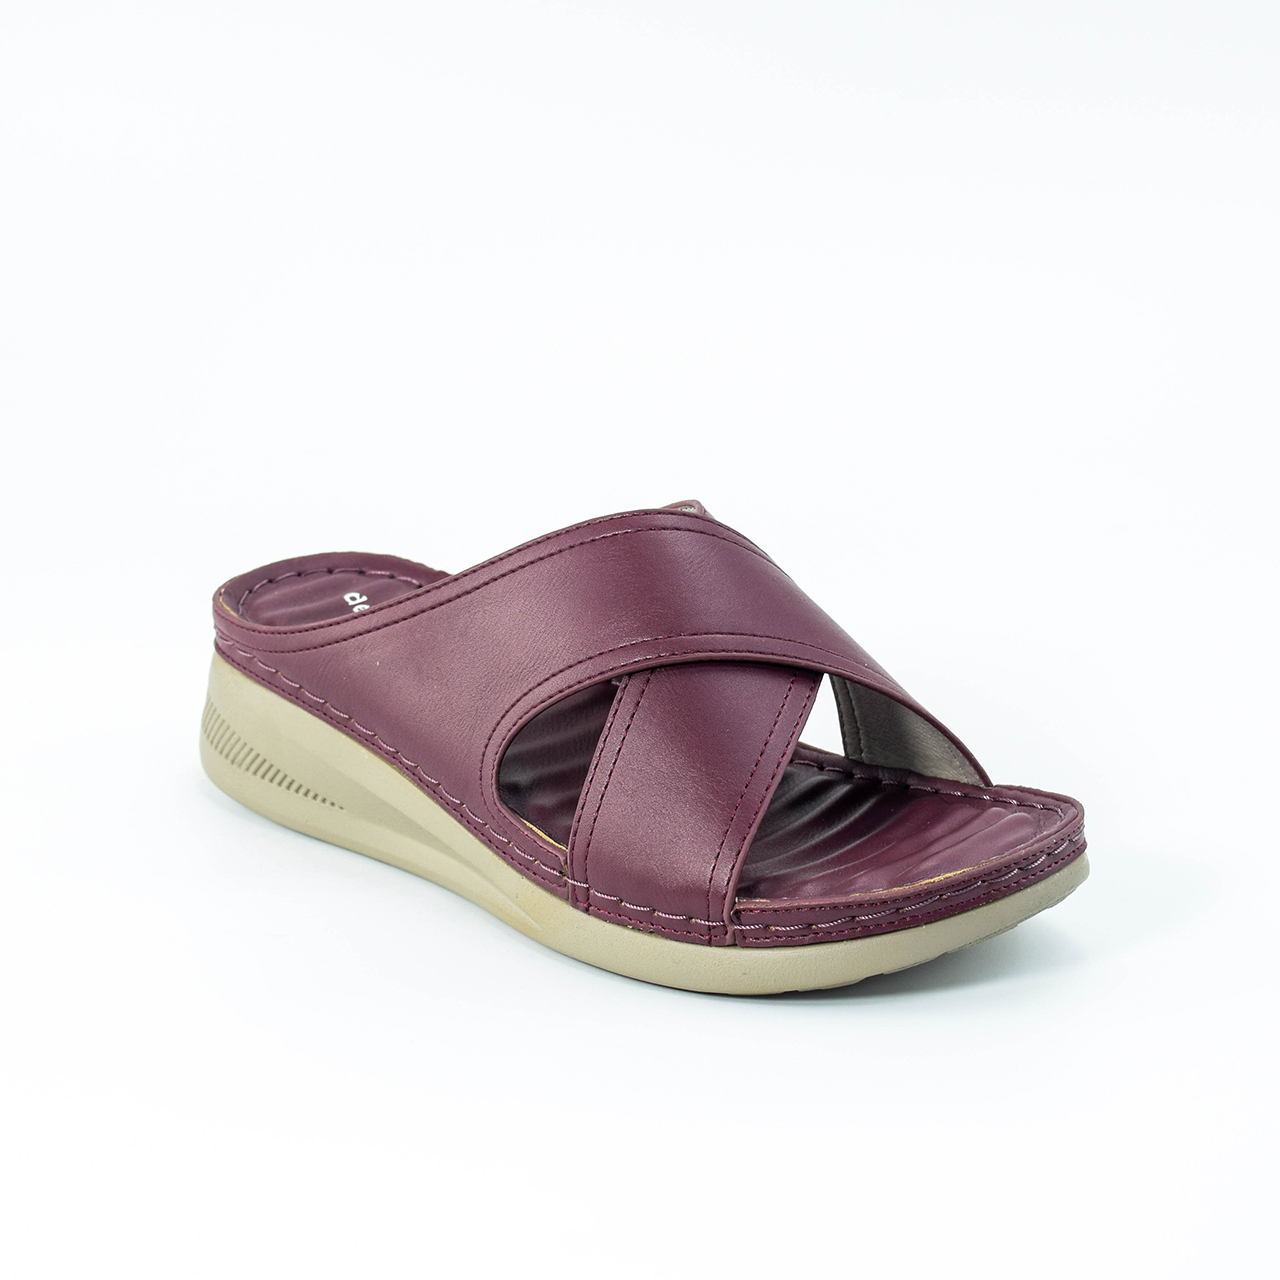 Daphne Cross Wedges in Maroon